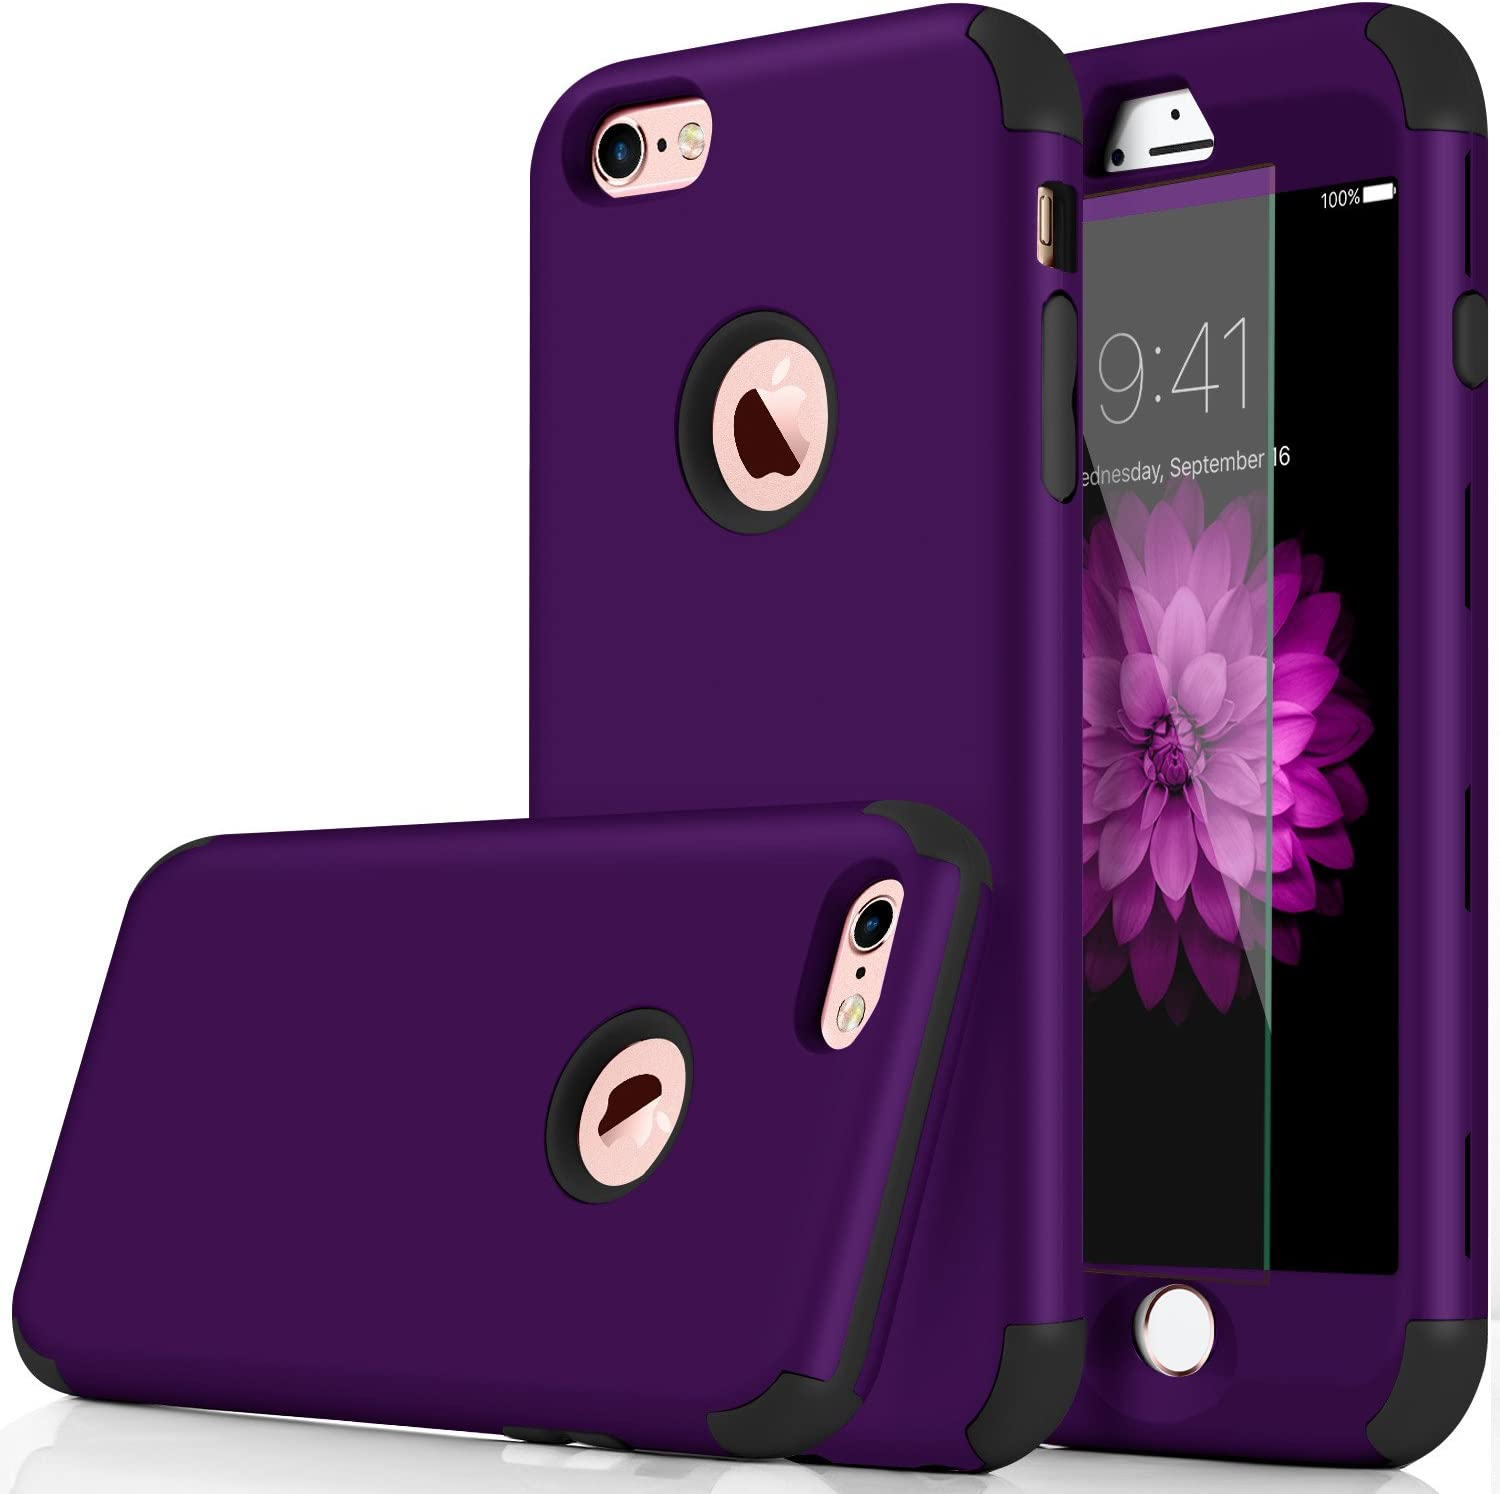 "iPhone 7 Case,Qusum 3-in-1 Shockproof Full Body Coverage Protection Hard Slim iPhone 7 Case with Tempered Glass Screen Protector for Apple iPhone 7 4.7"" Inch (Purple)"